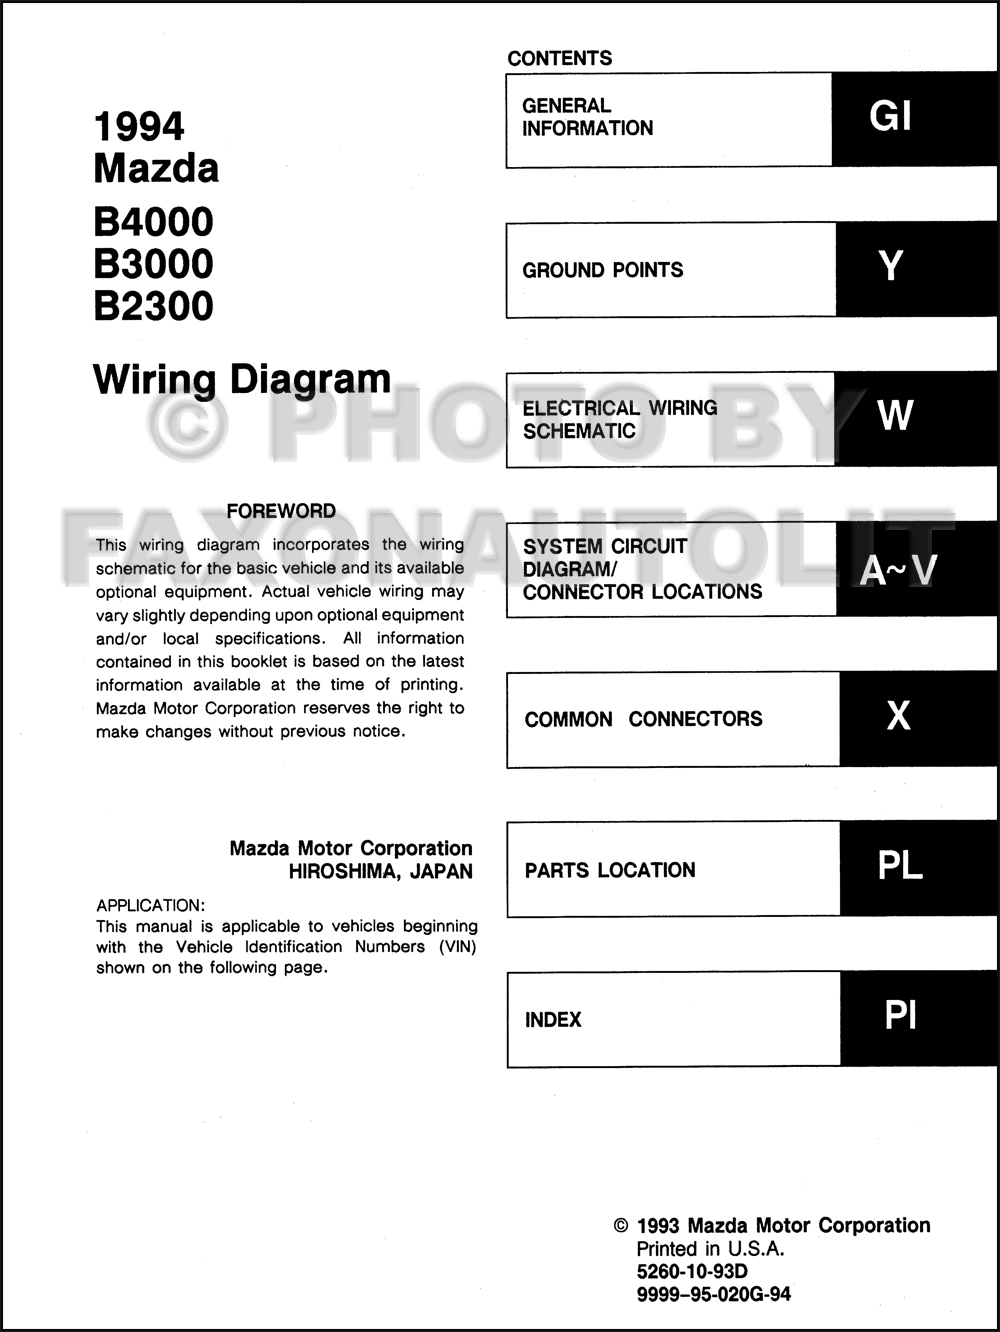 1994MazdaB4000B3000B23000OWD TOC awesome mazda b4000 wiring diagram ideas best image diagram 8we us 1998 mazda b4000 fuse box diagram at gsmx.co